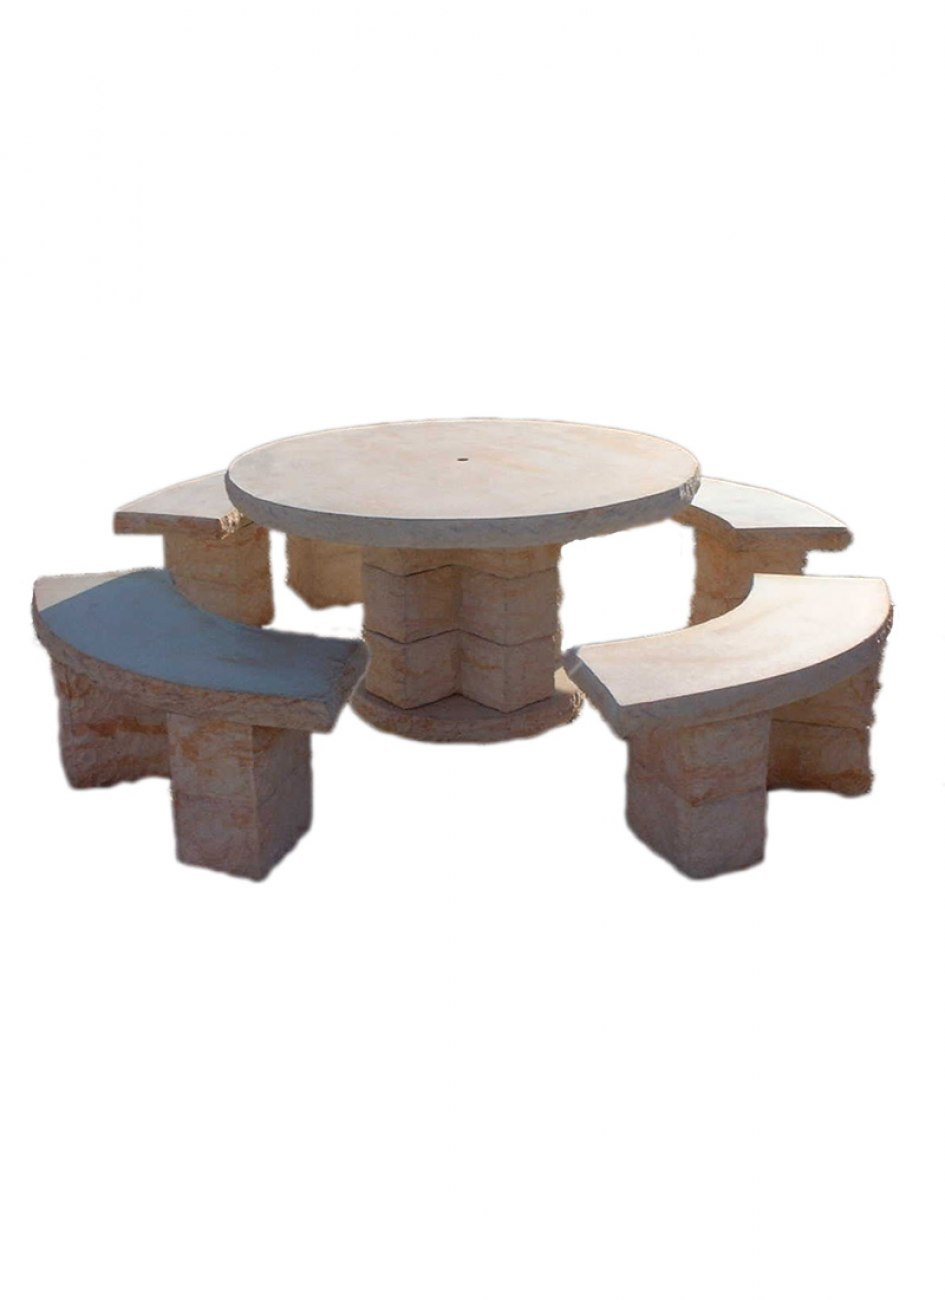 Table de jardin en pierre reconstitu e type pierre s che 8 for Table jardin en pierre